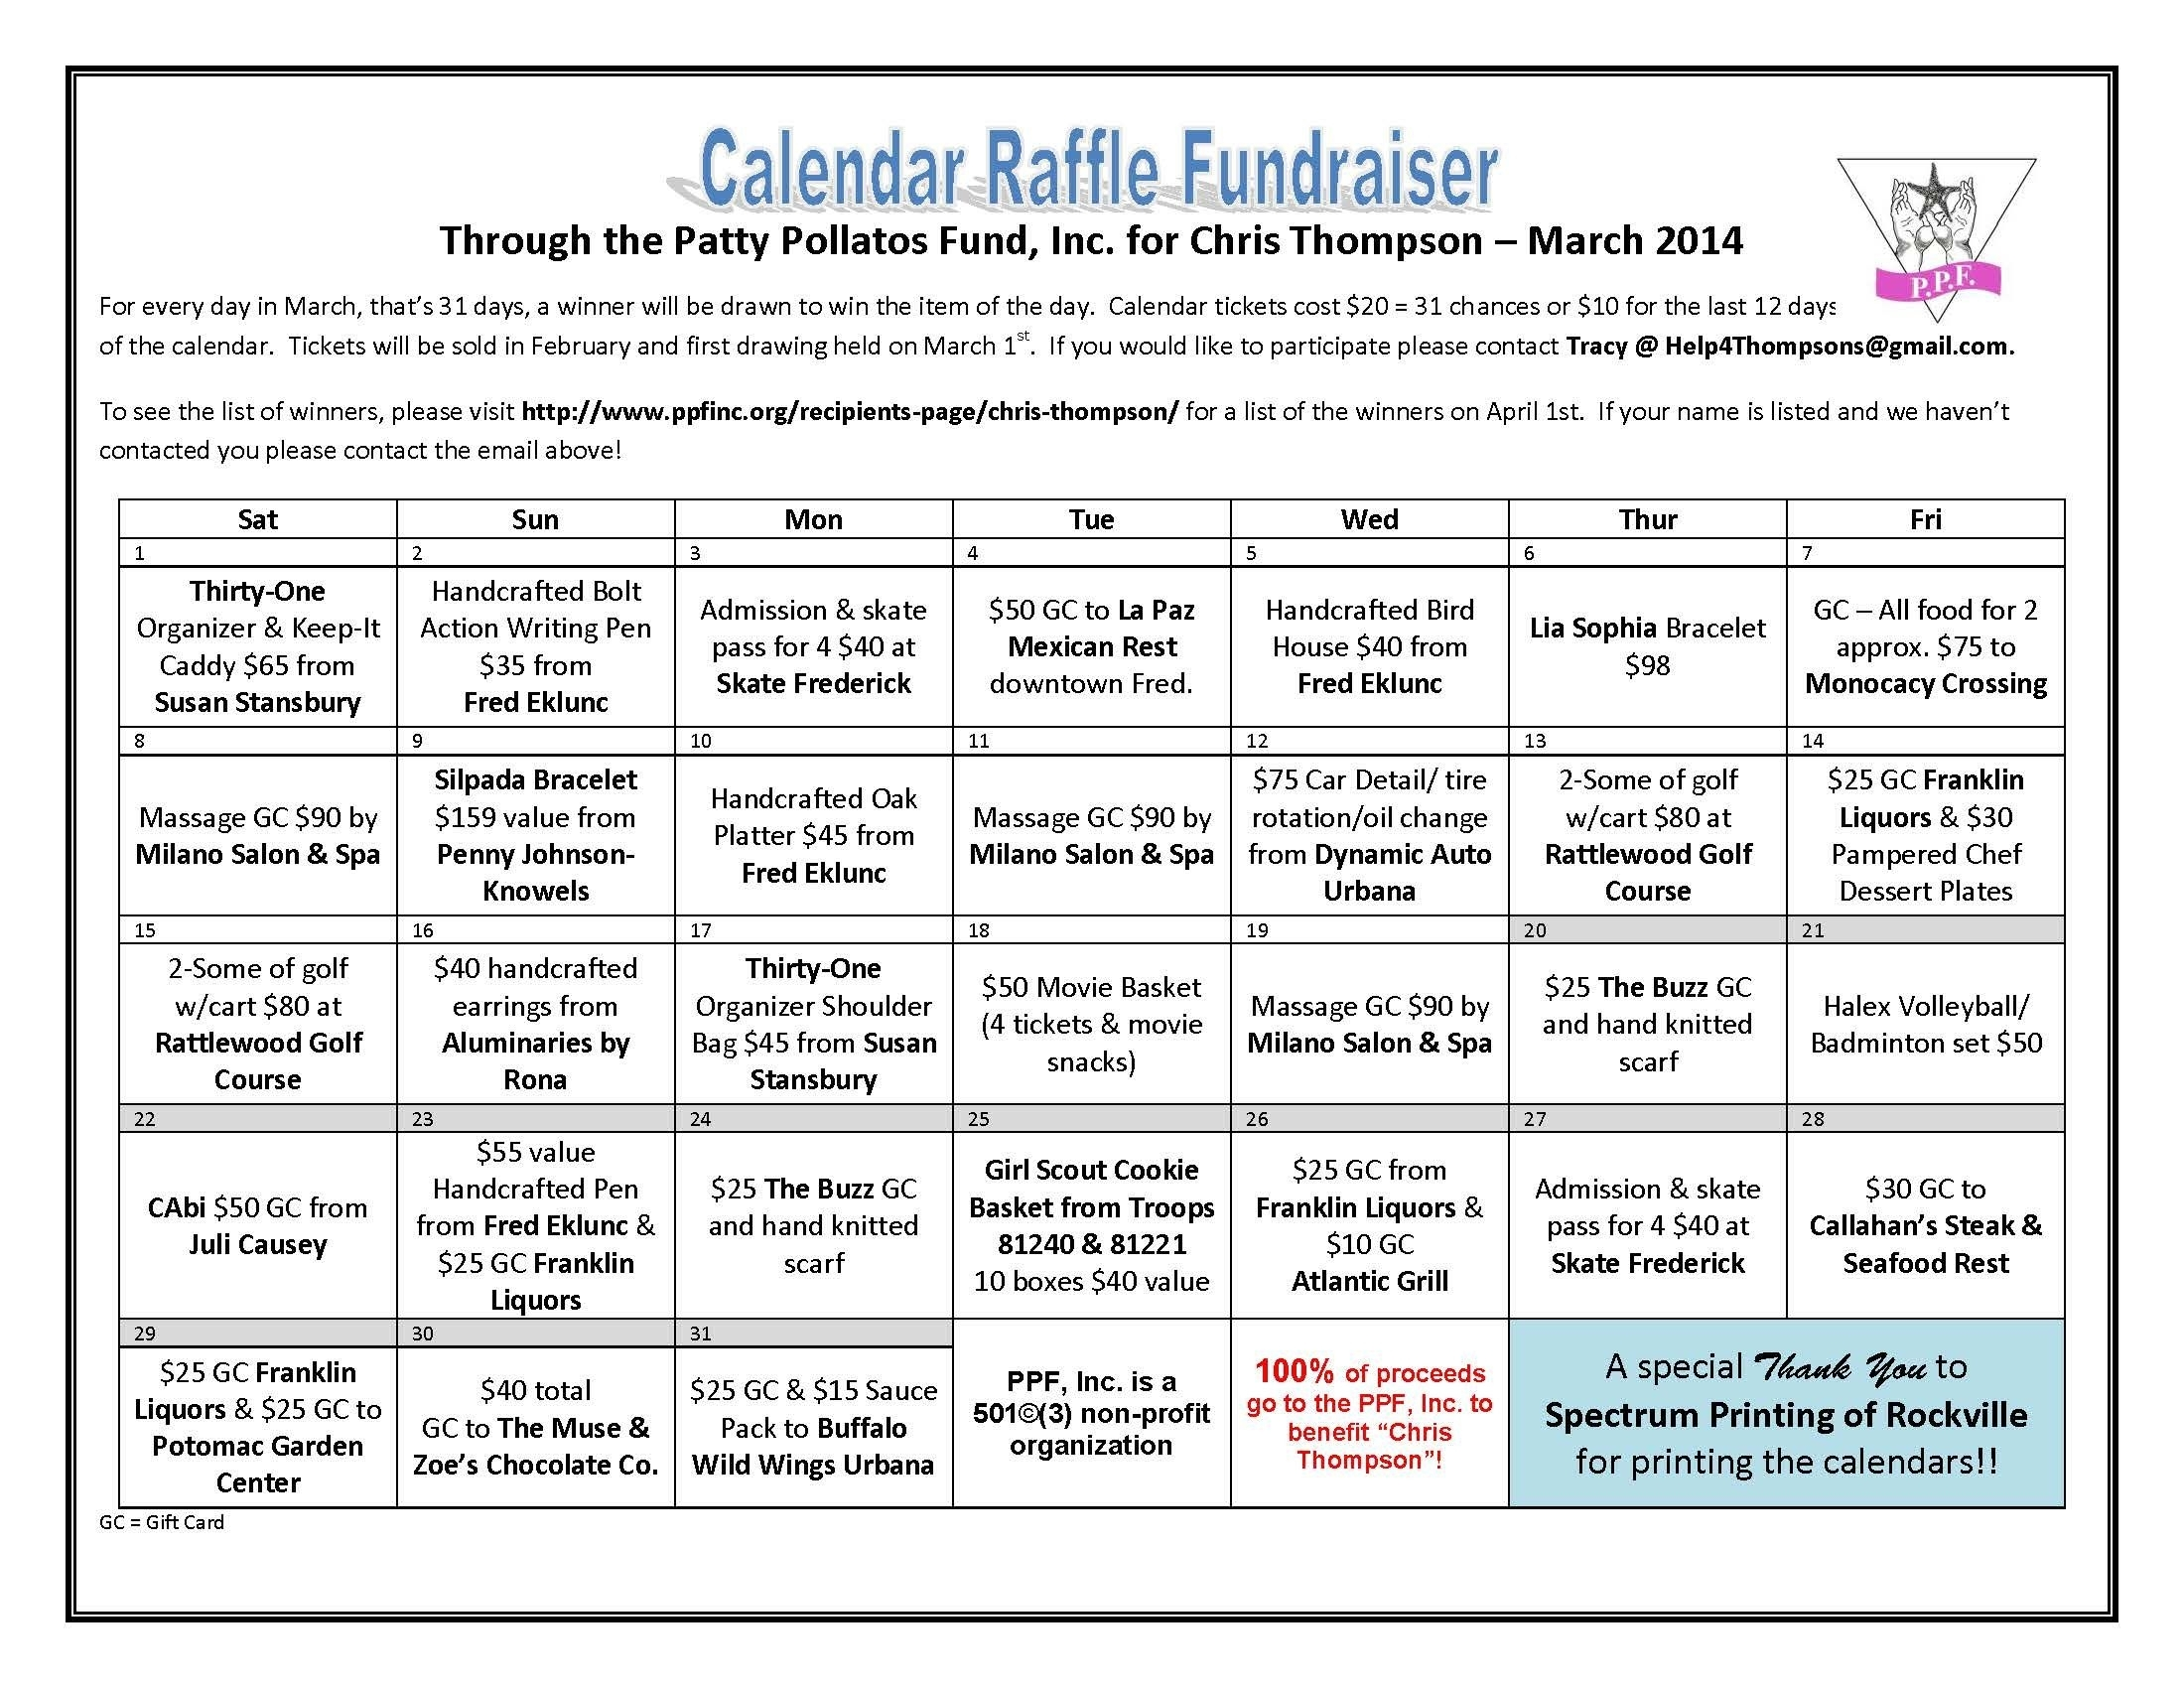 Lottery Calendar Fundraiser Editable Template